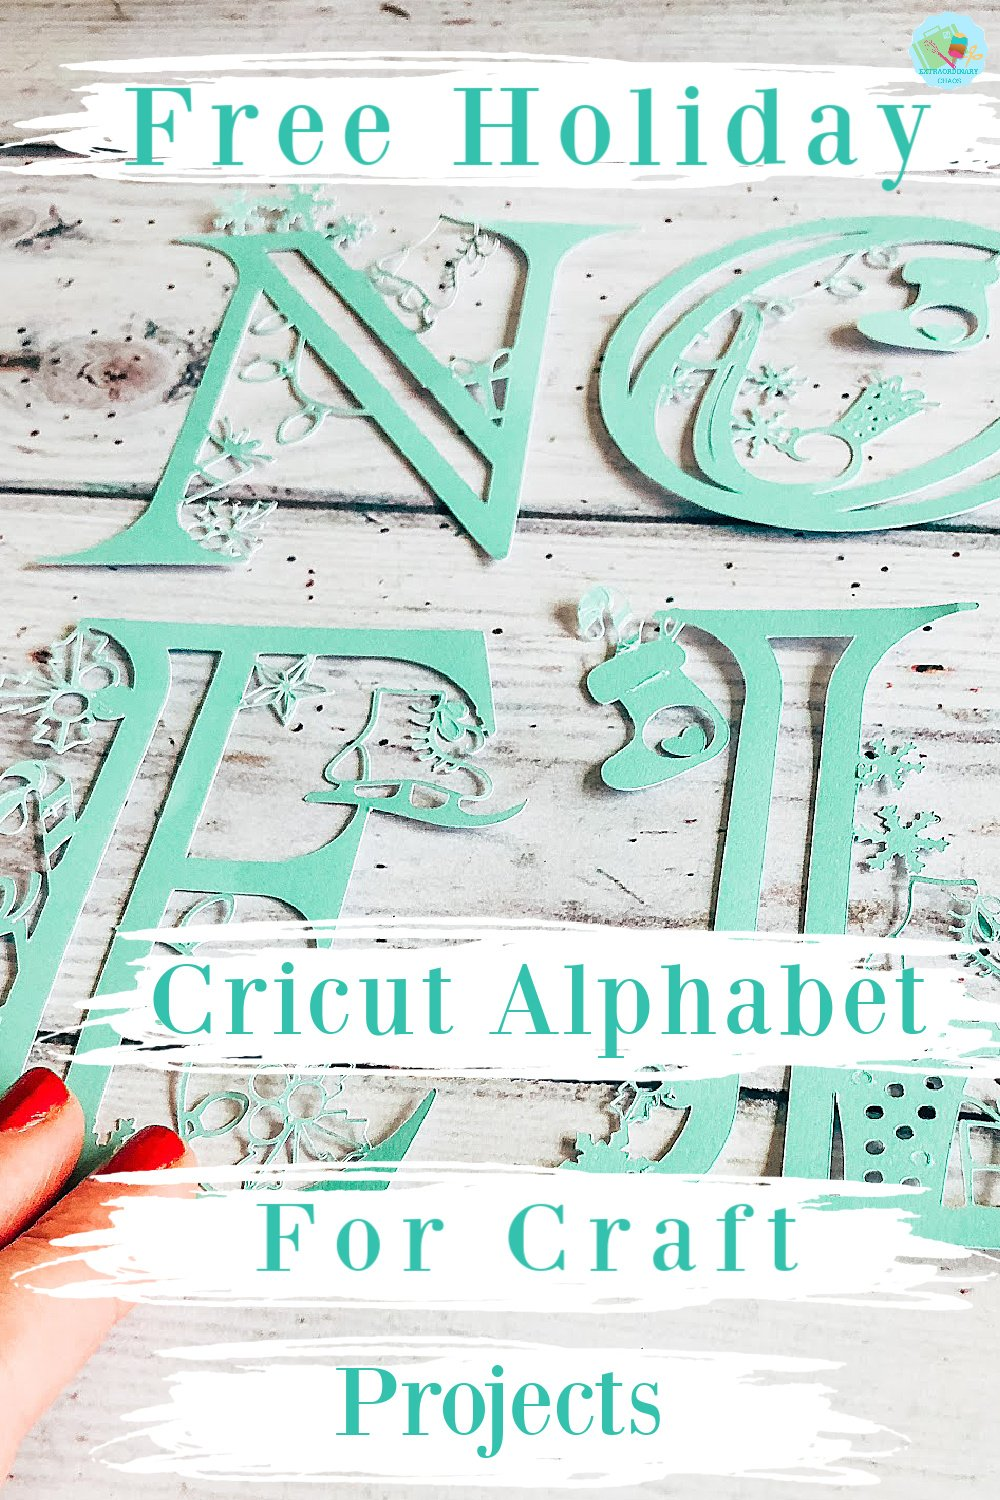 Free Holiday Cricut Alphabet For Craft Projects to make as gifts or Christmas home projects and to sell